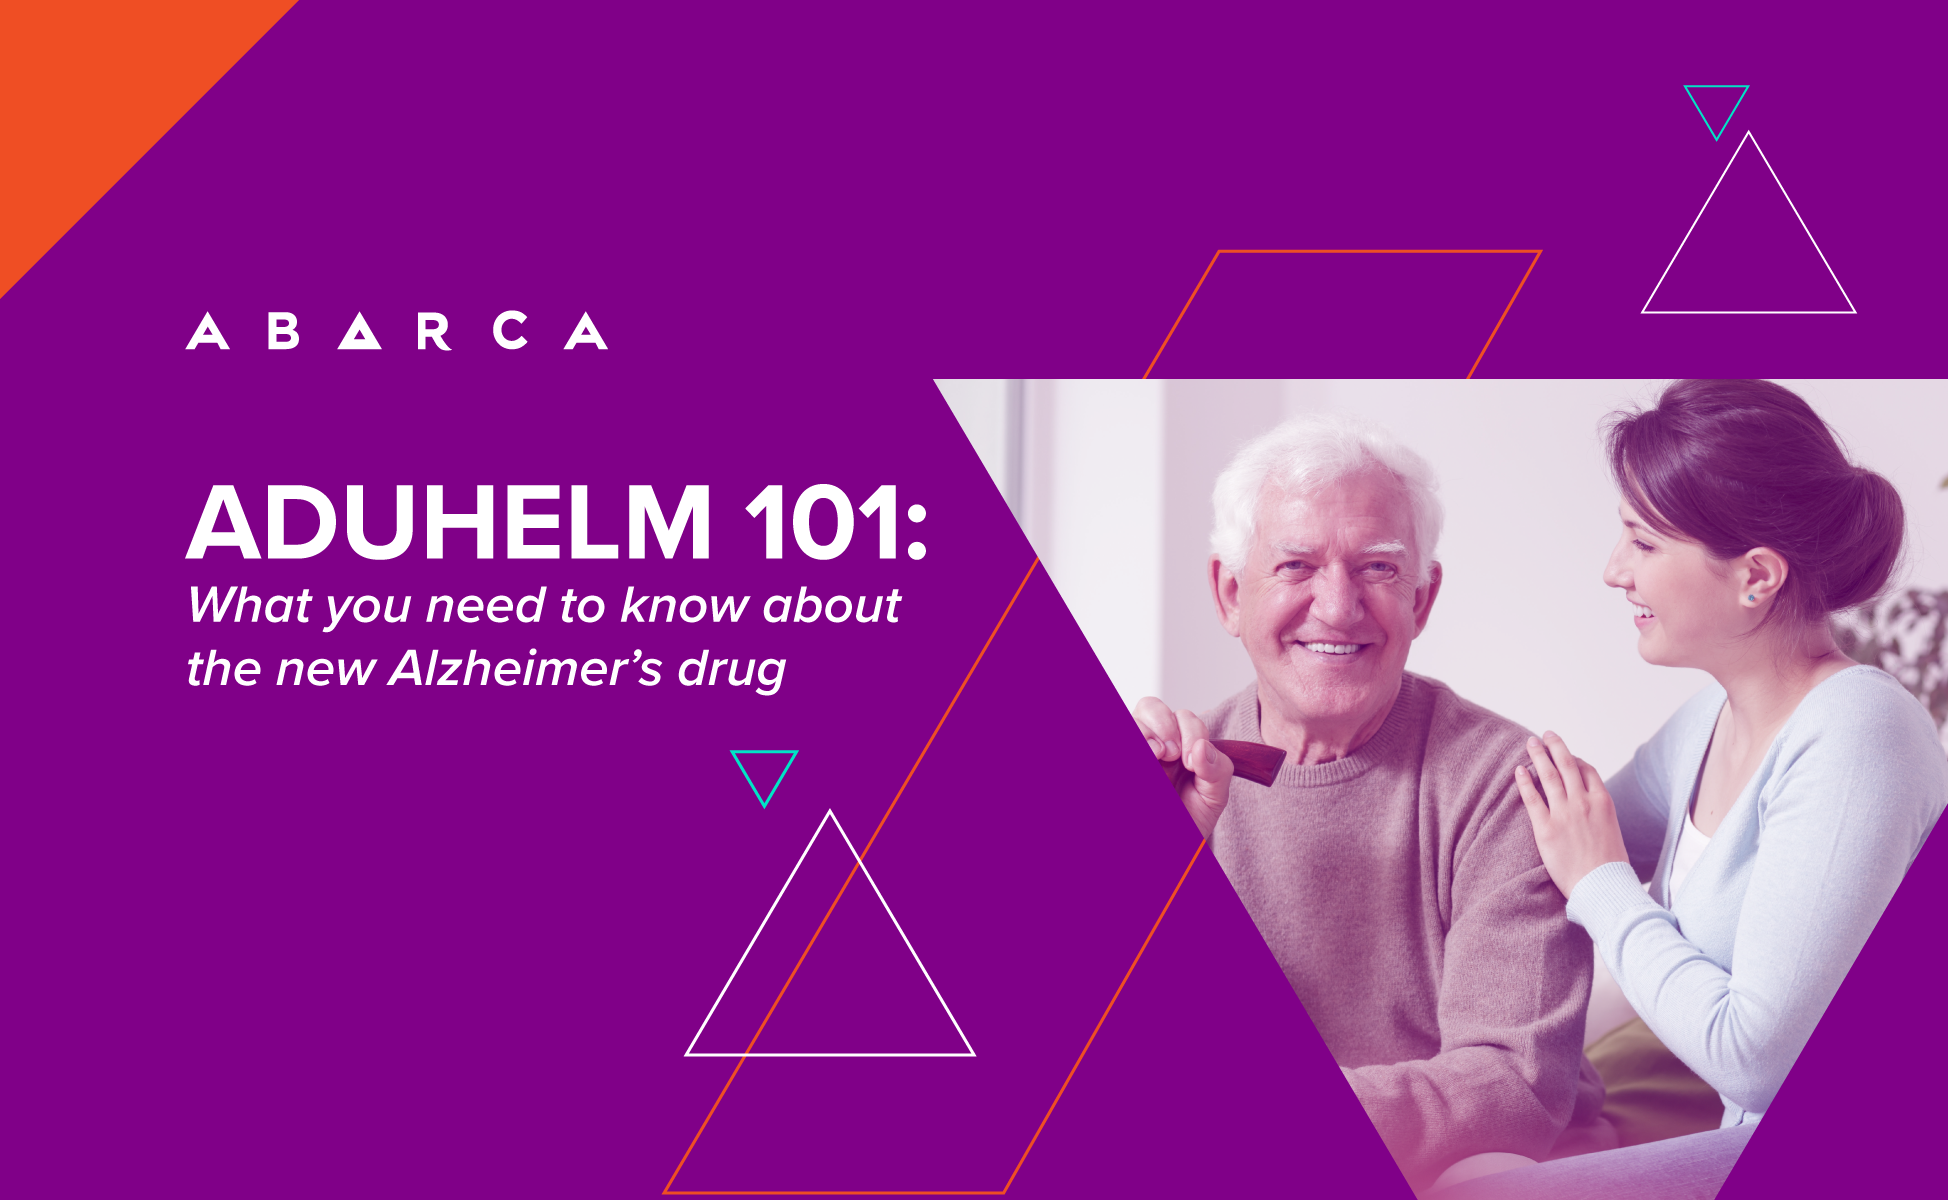 Abarca Health: Aduhelm 101: What you need to know about the new Alzheimer's drug